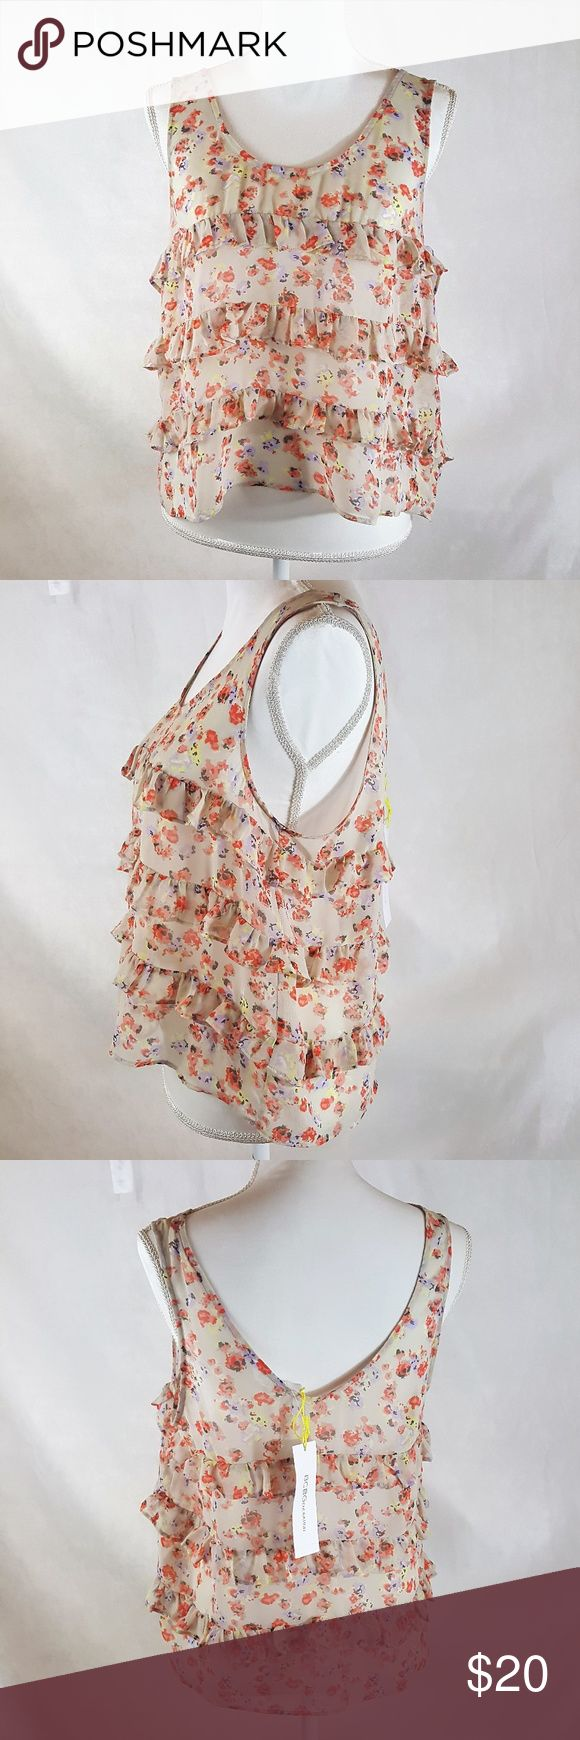 """BCBGeneration  Multi layered ruffle tank NWT Soft floral pattern in a very pretty layered tank (measurements taken flat) •20"""" chest •23"""" length  •Size m •100% polyester BCBGeneration Tops Tank Tops"""